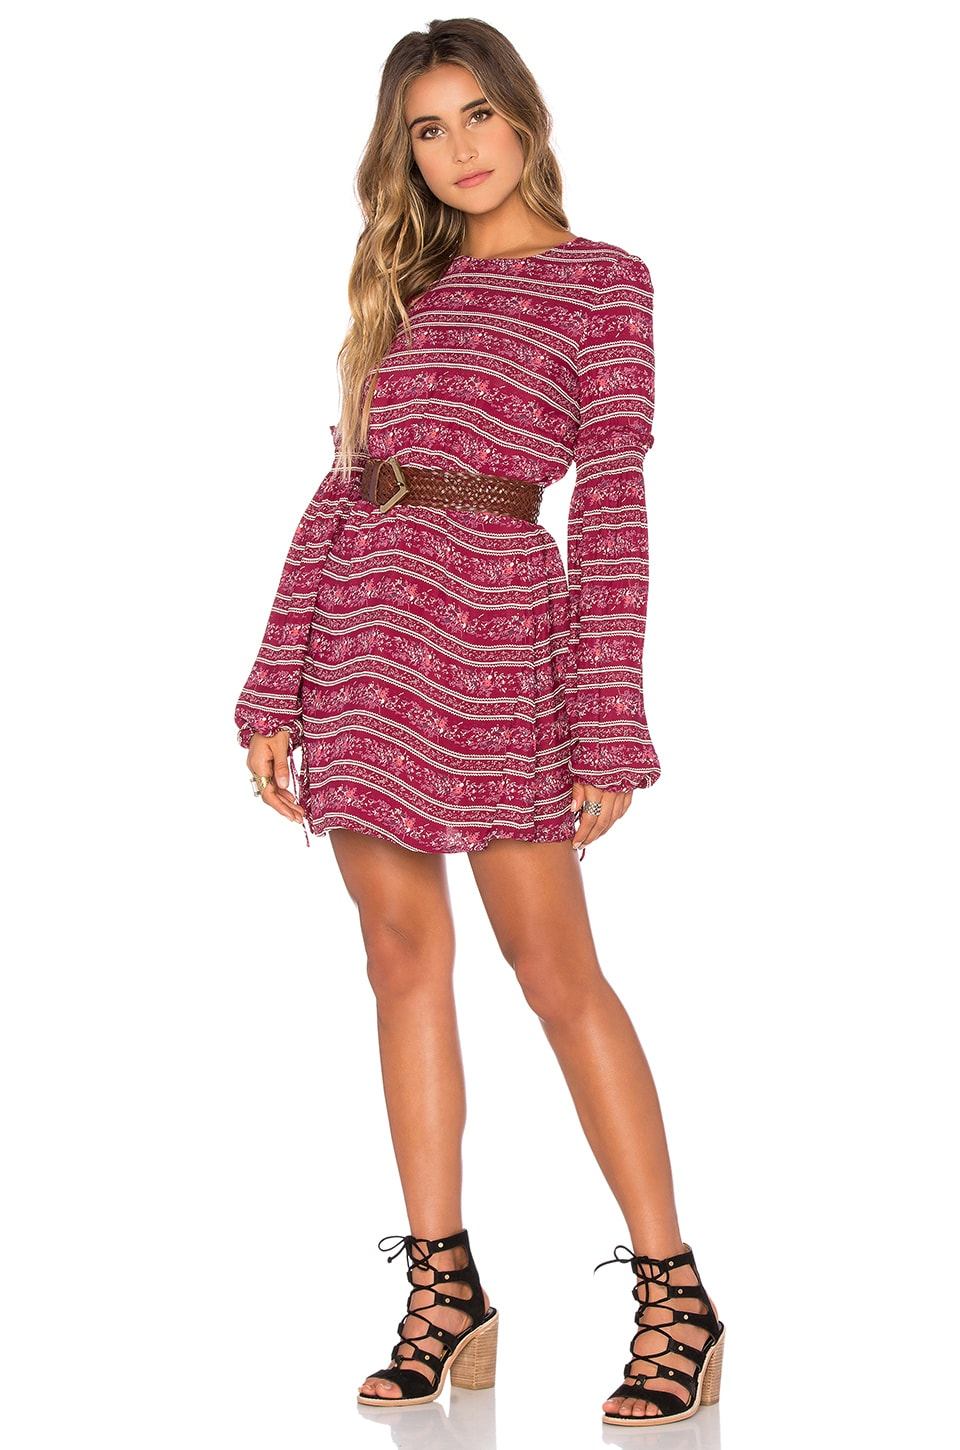 Tularosa x REVOLVE Gracefully Dress in Red Border